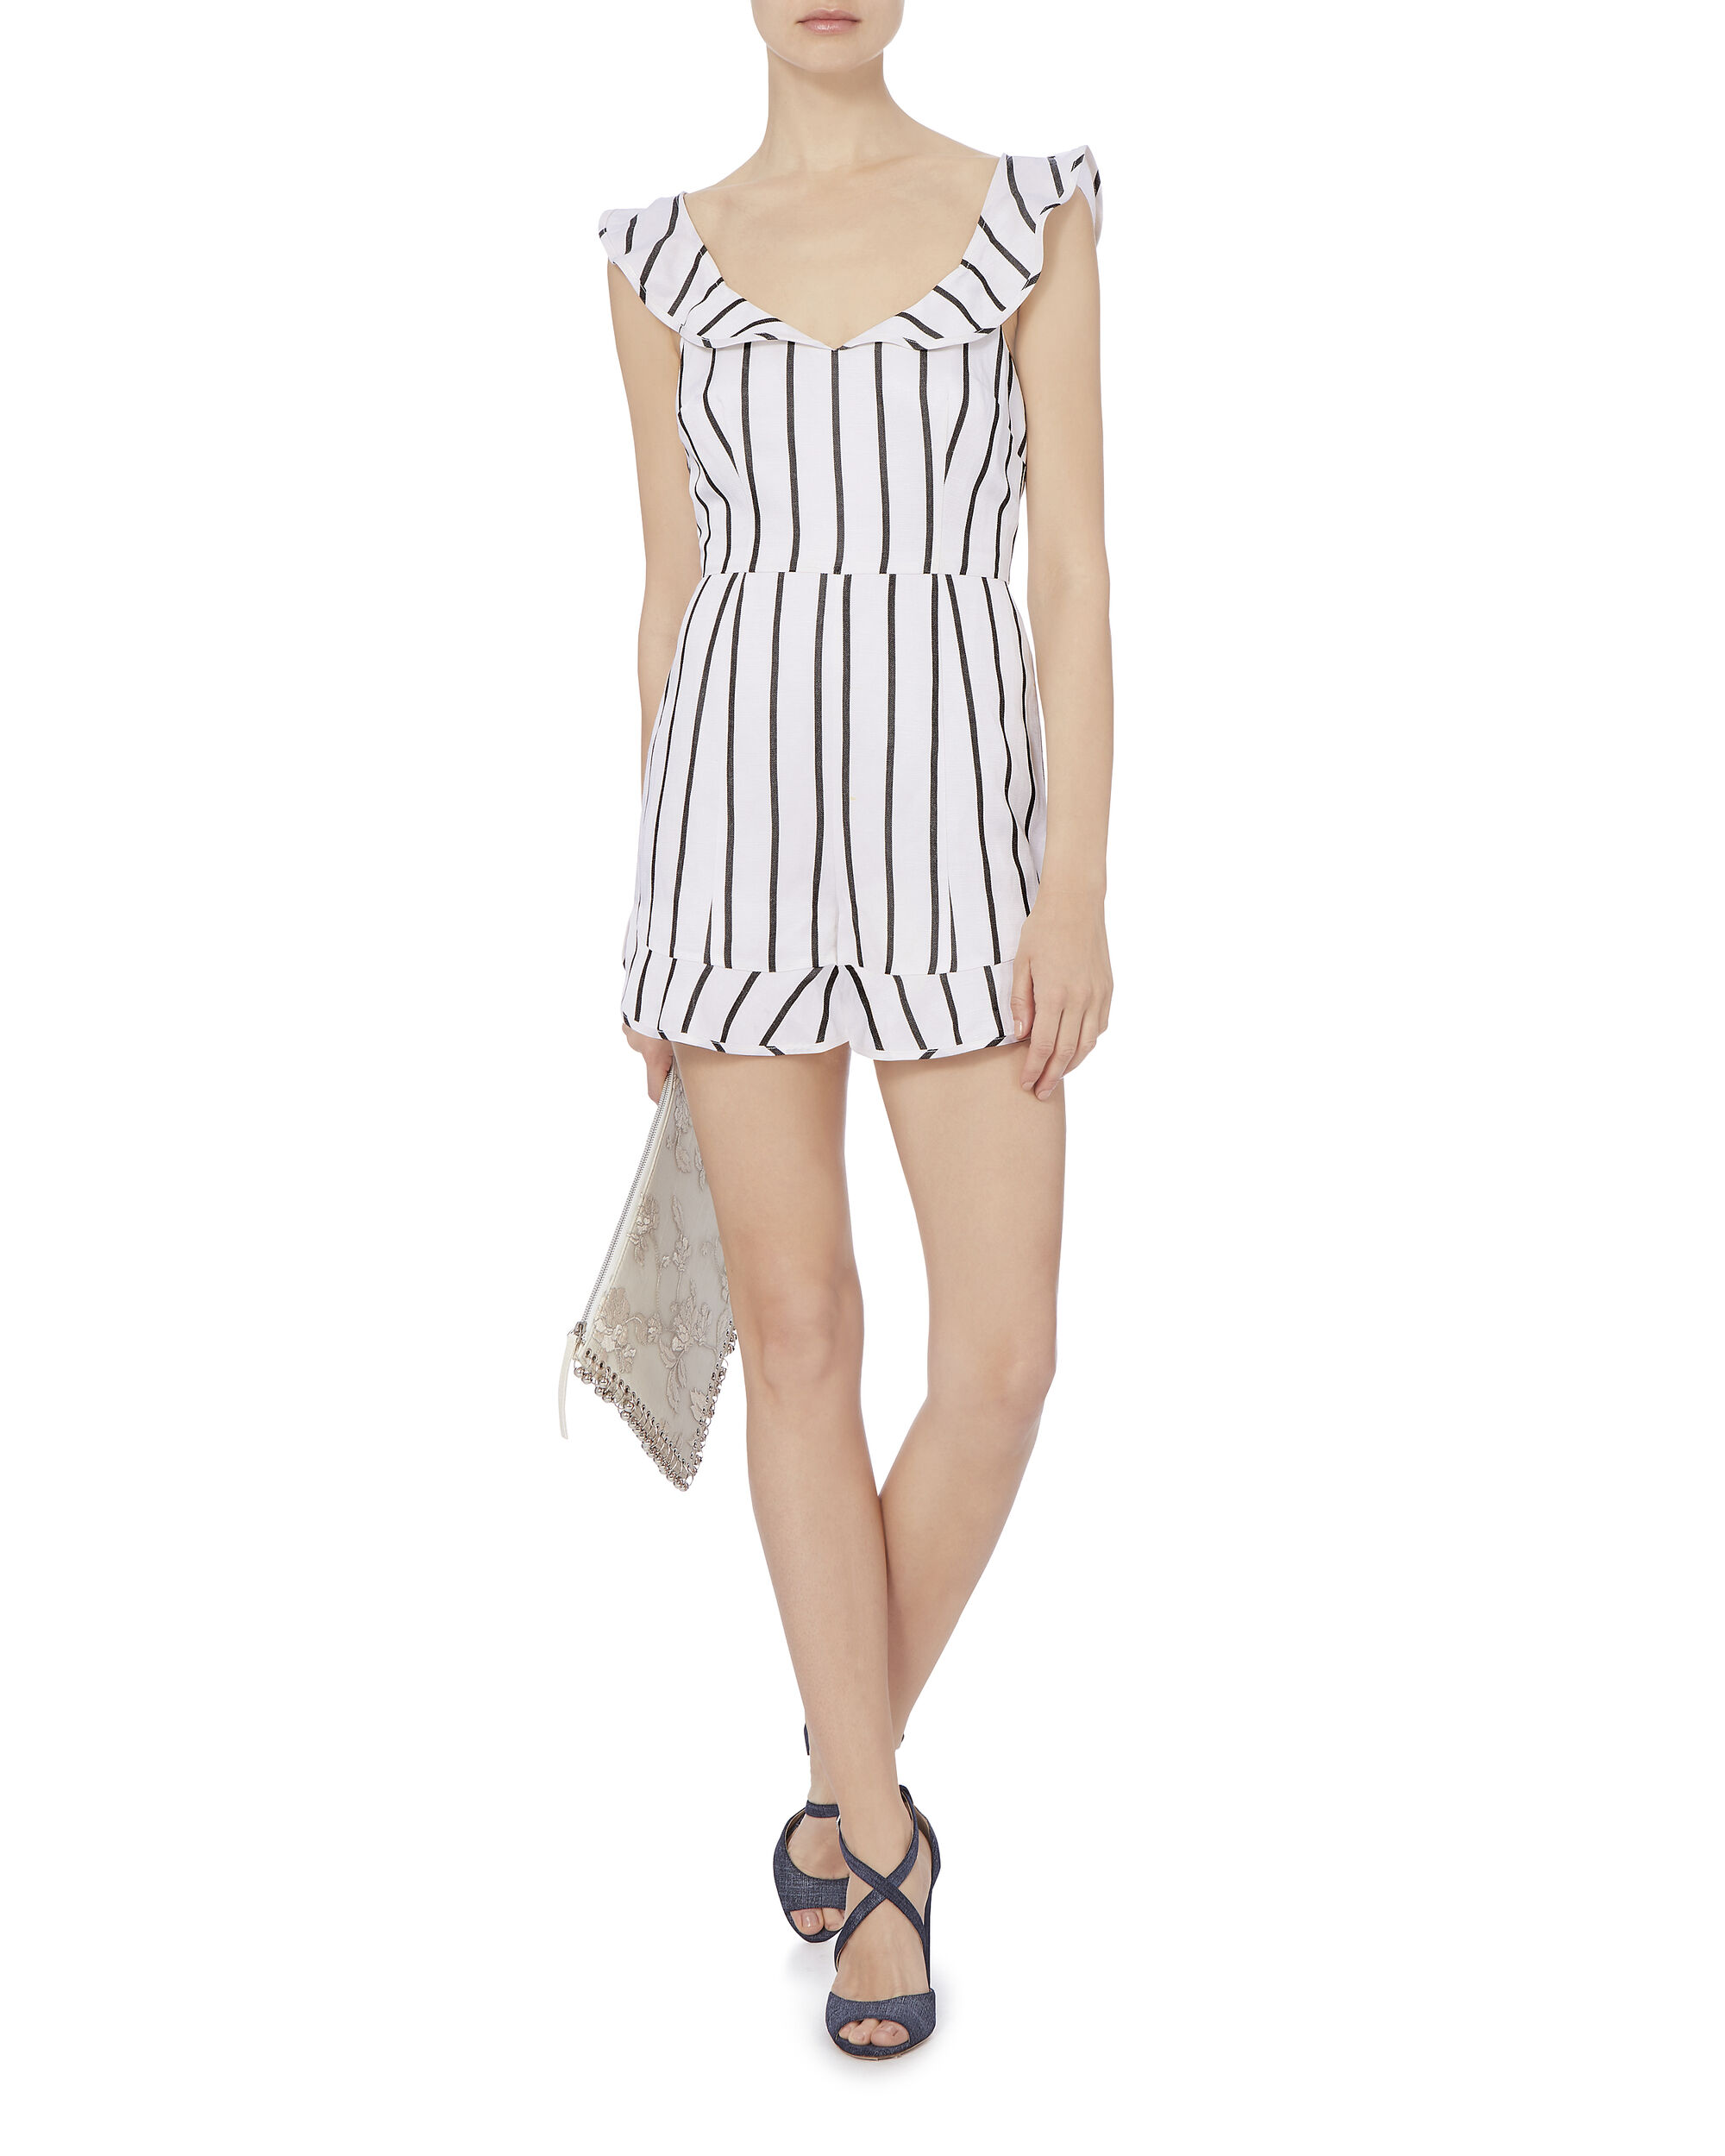 Rachel Striped Flutter Romper, PATTERN, hi-res